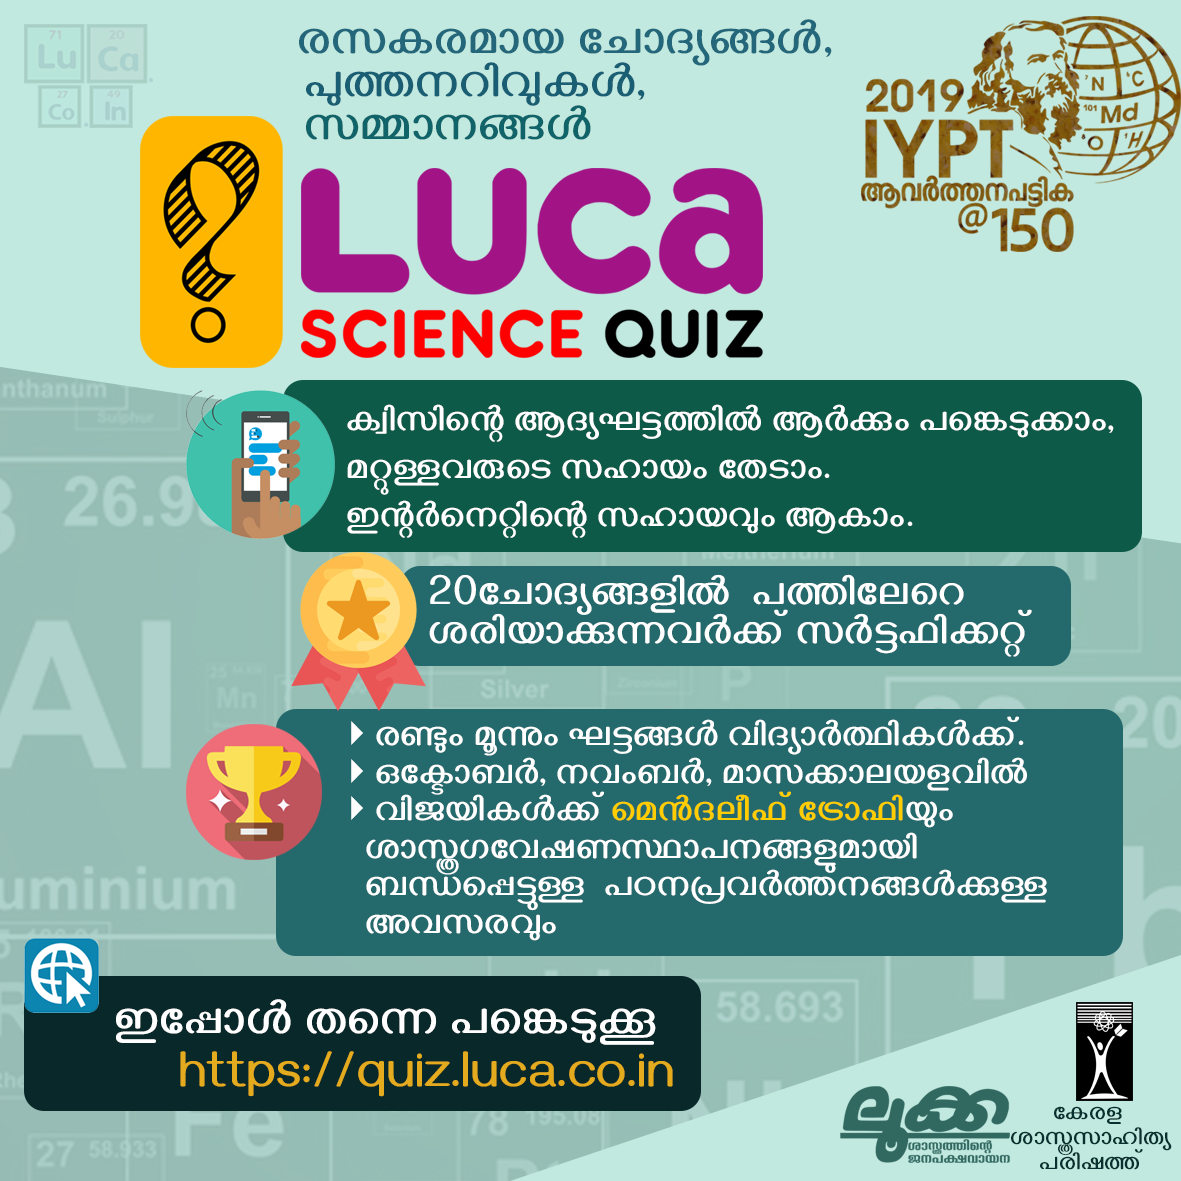 LUCA Science Quiz